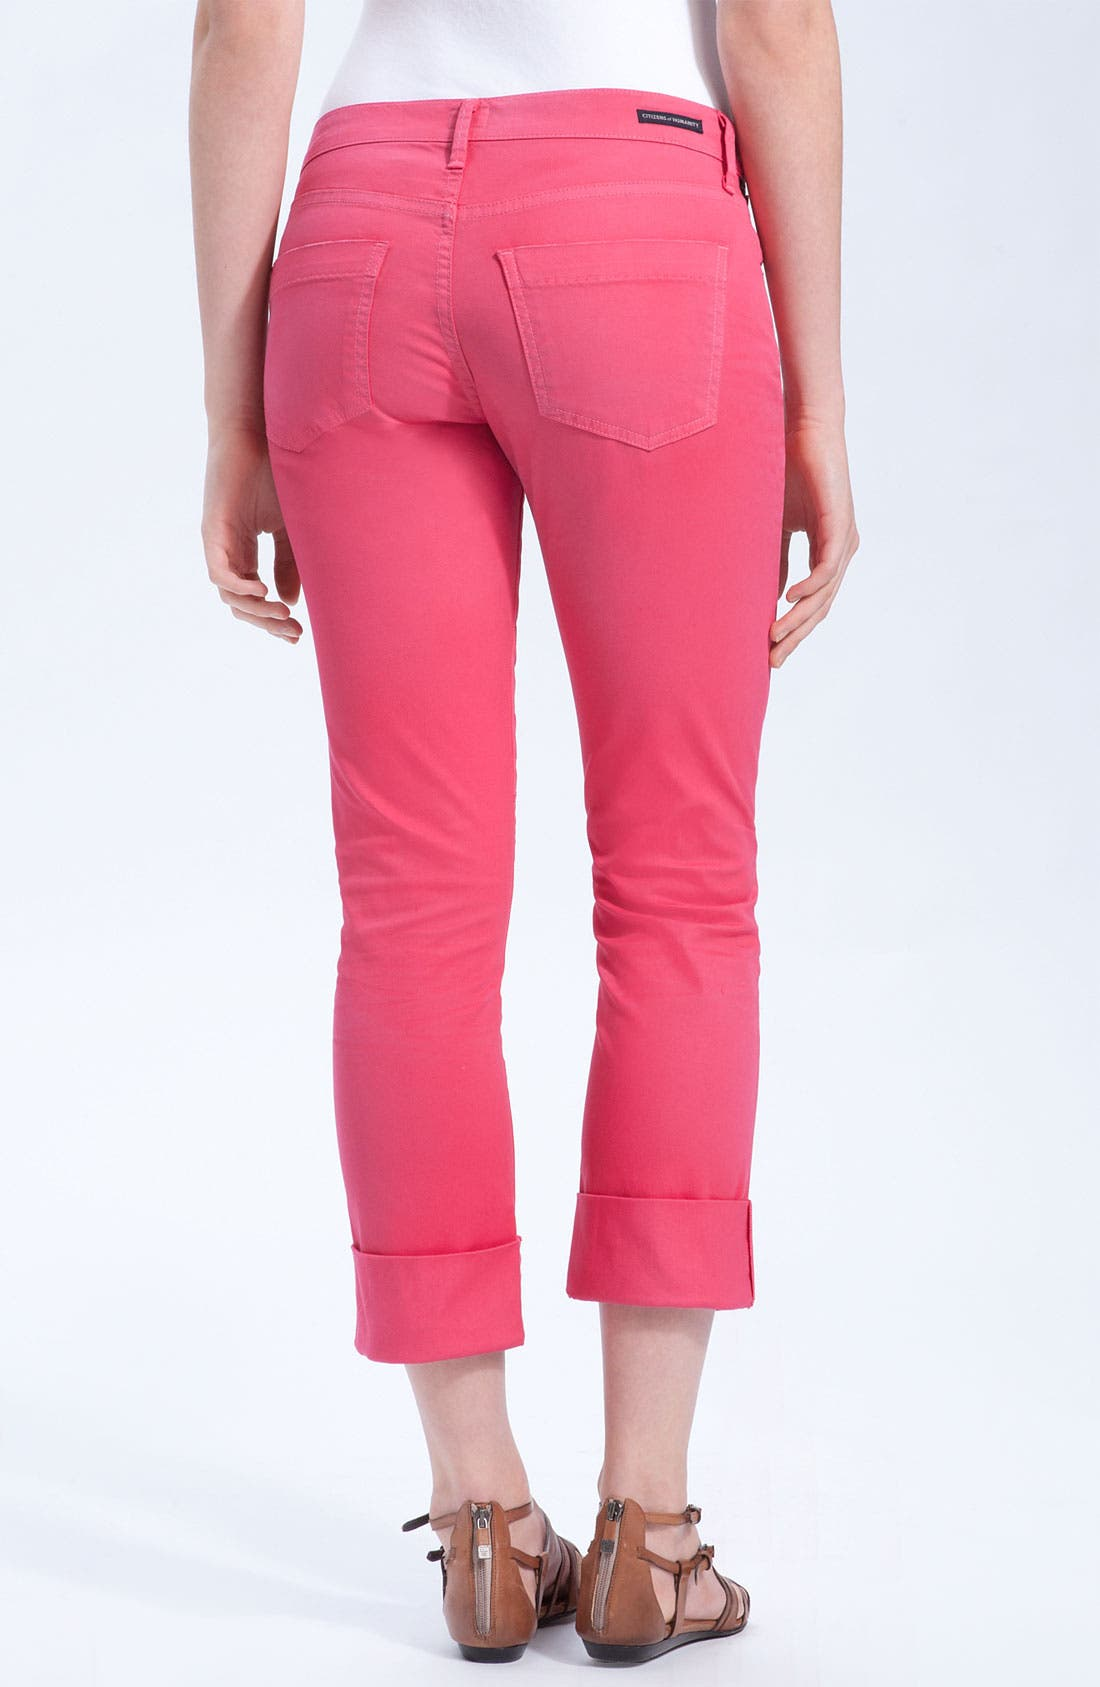 Alternate Image 1 Selected - Citizens of Humanity 'Dani' Colored Denim Skinny Leg Crop Jeans (Shocking Pink)